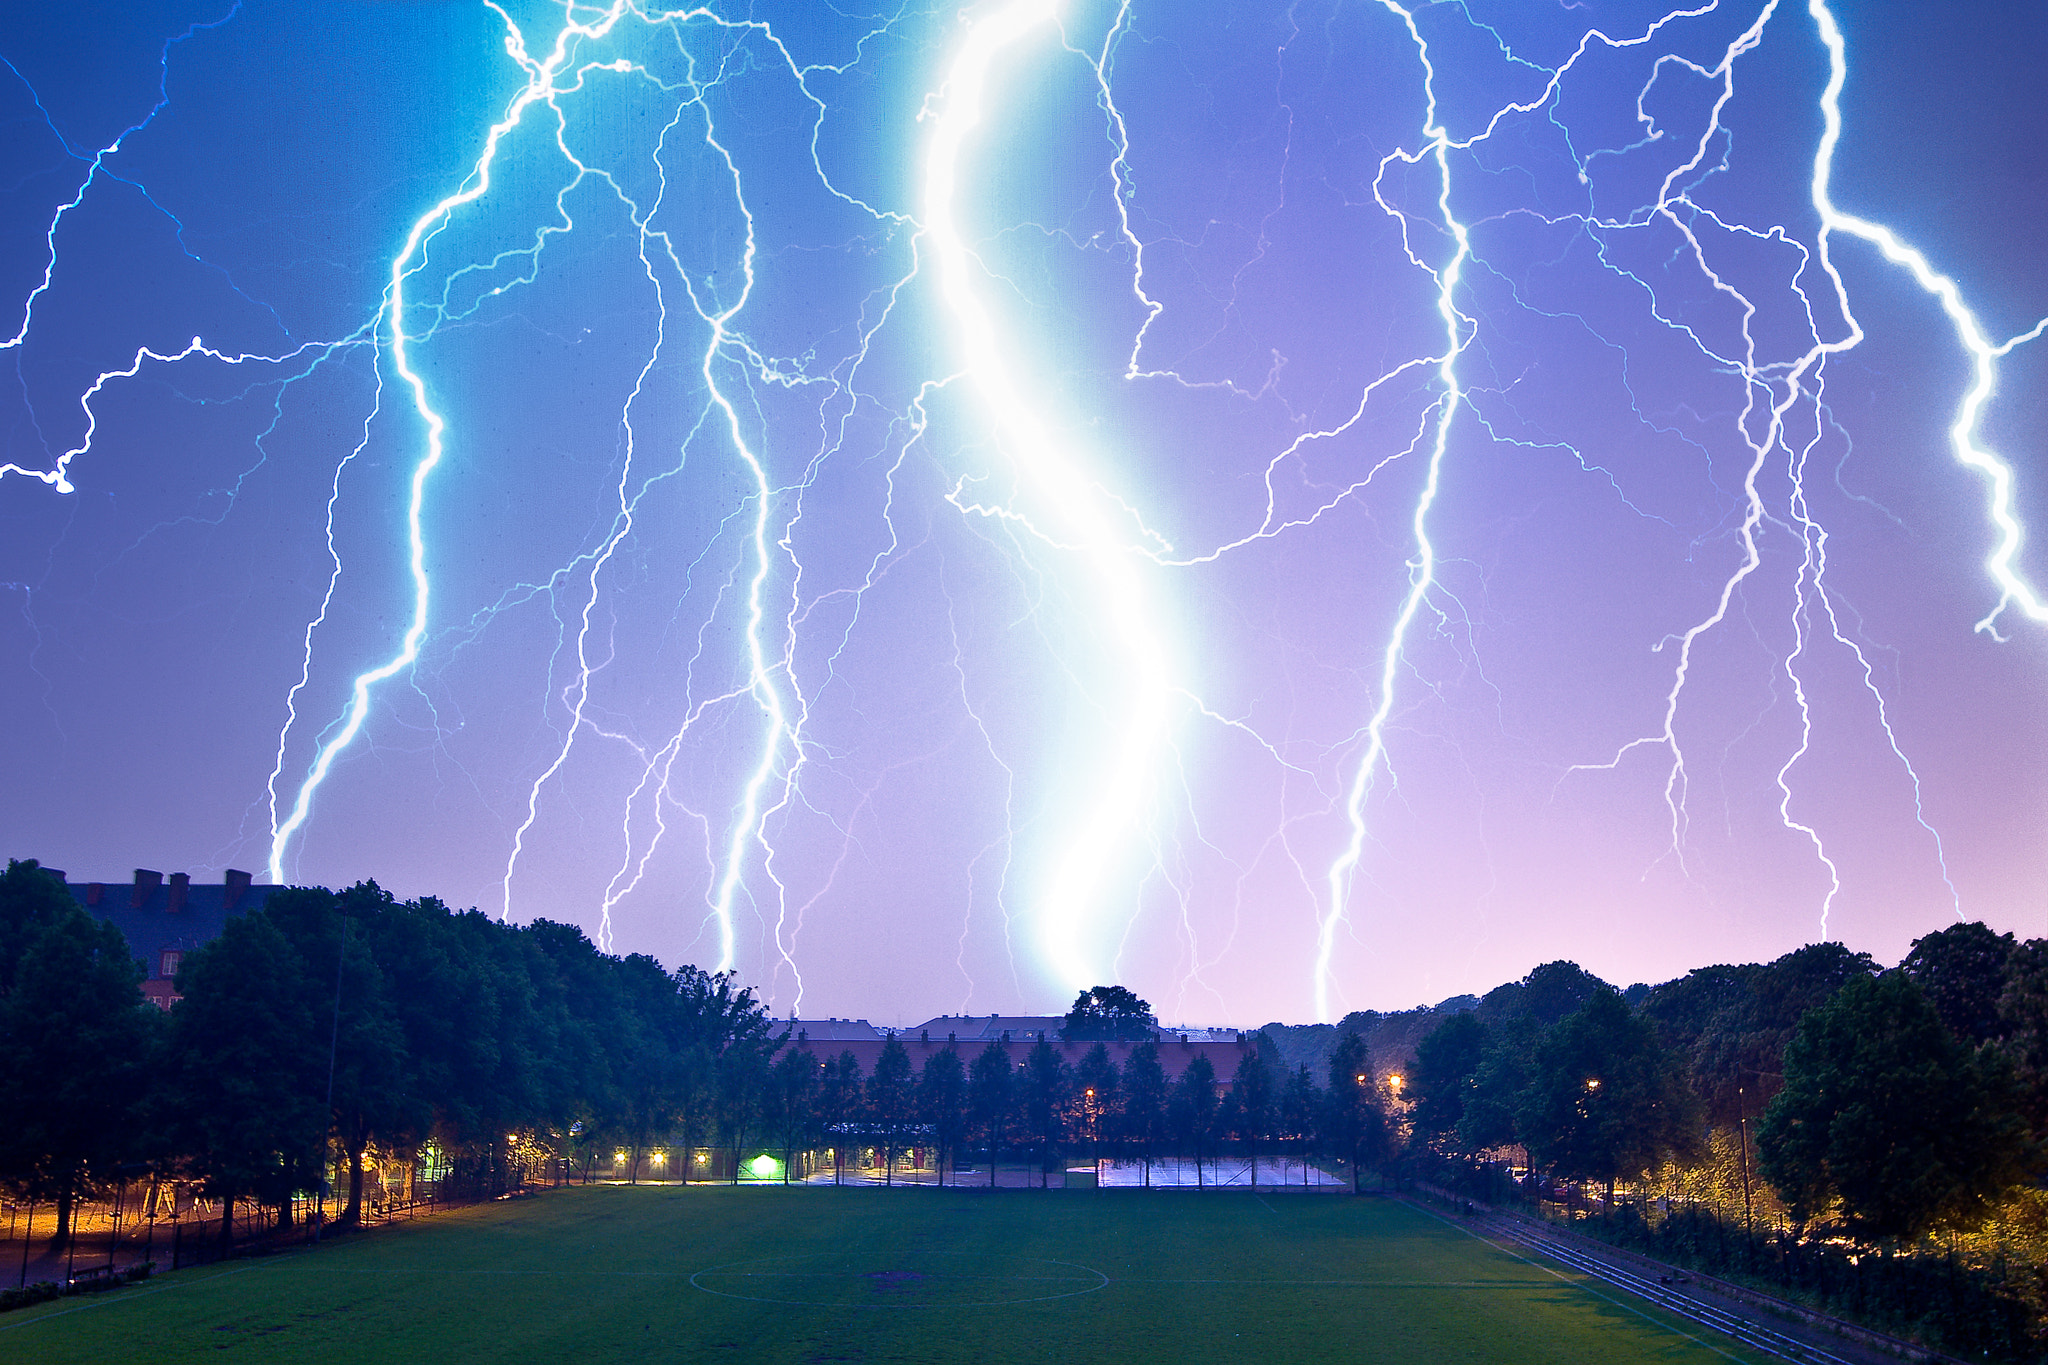 Photograph Electrical storm (lightning) by Mathias Vejerslev on 500px